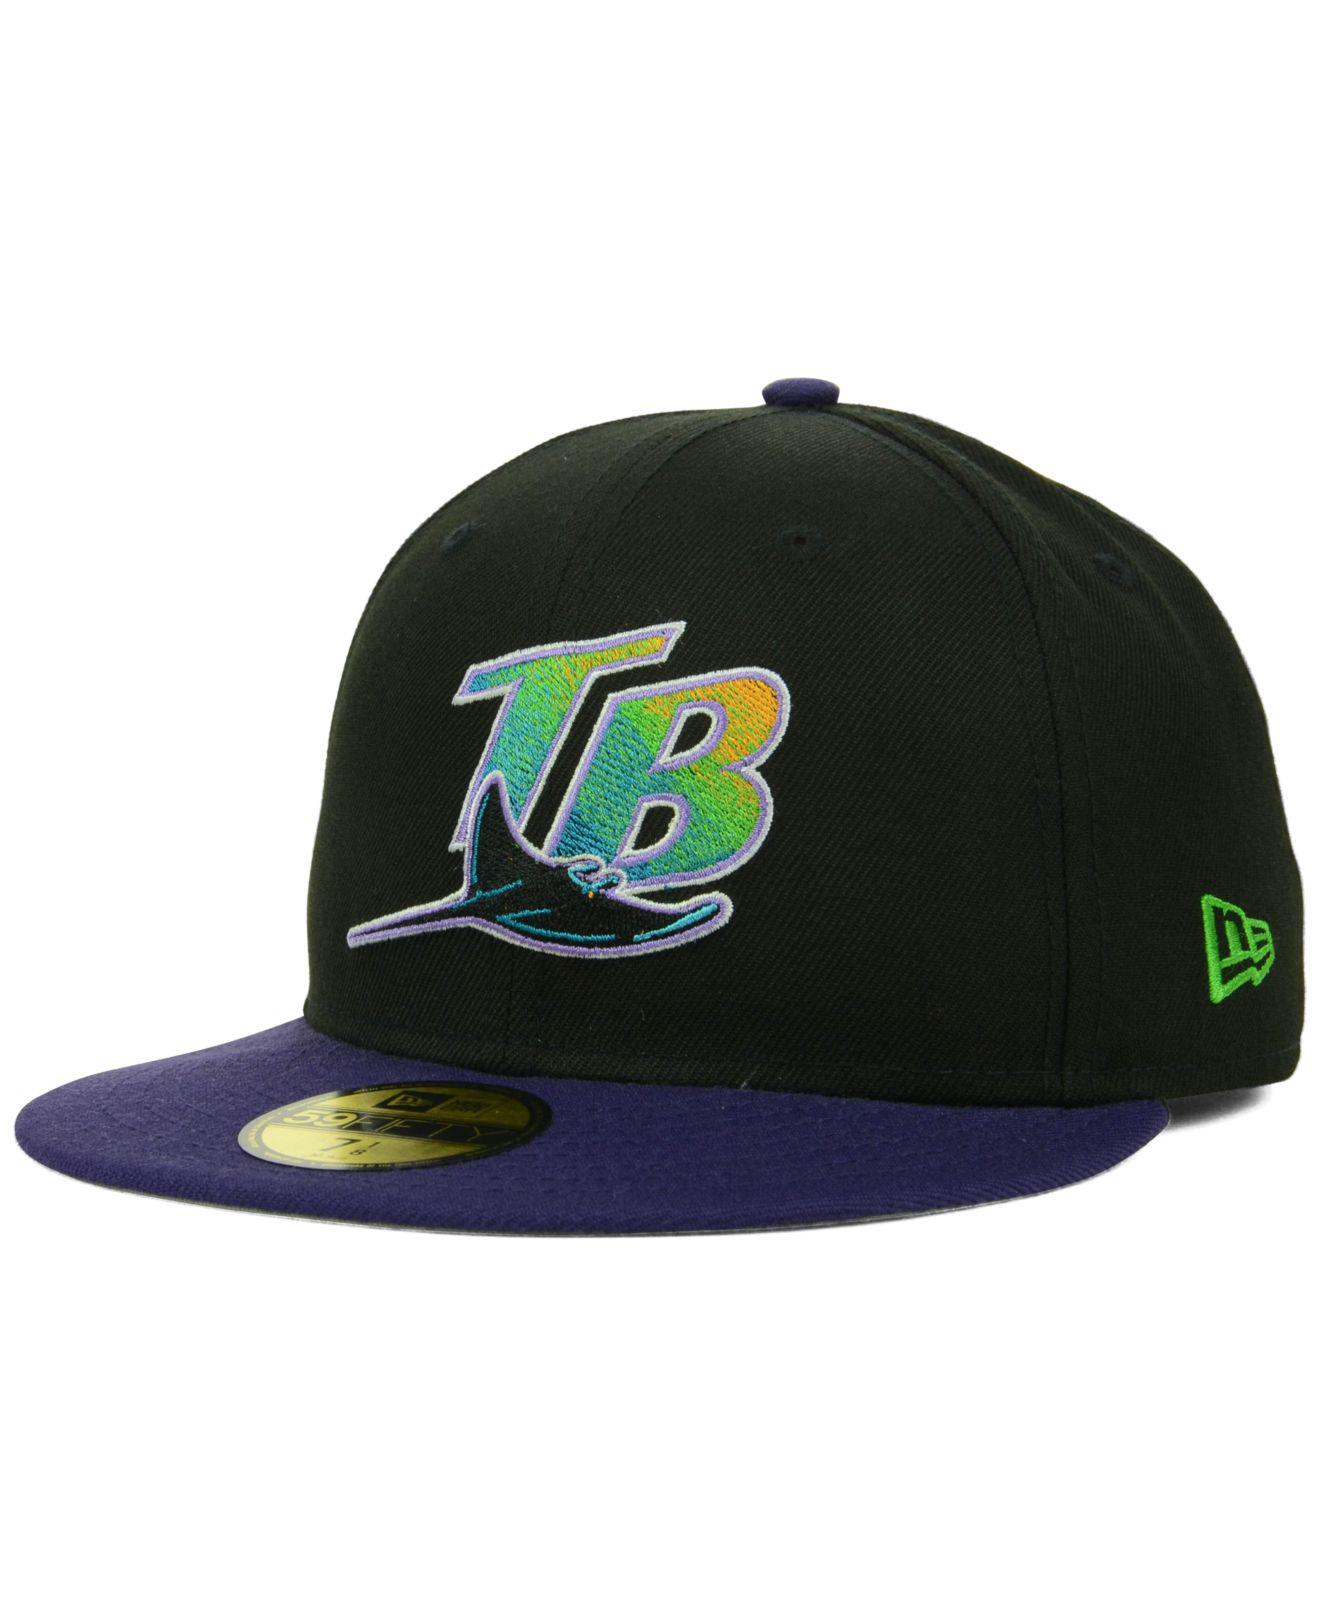 super popular cd846 a1db6 KTZ. Men s Blue Tampa Bay Rays Cooperstown 59fifty Cap